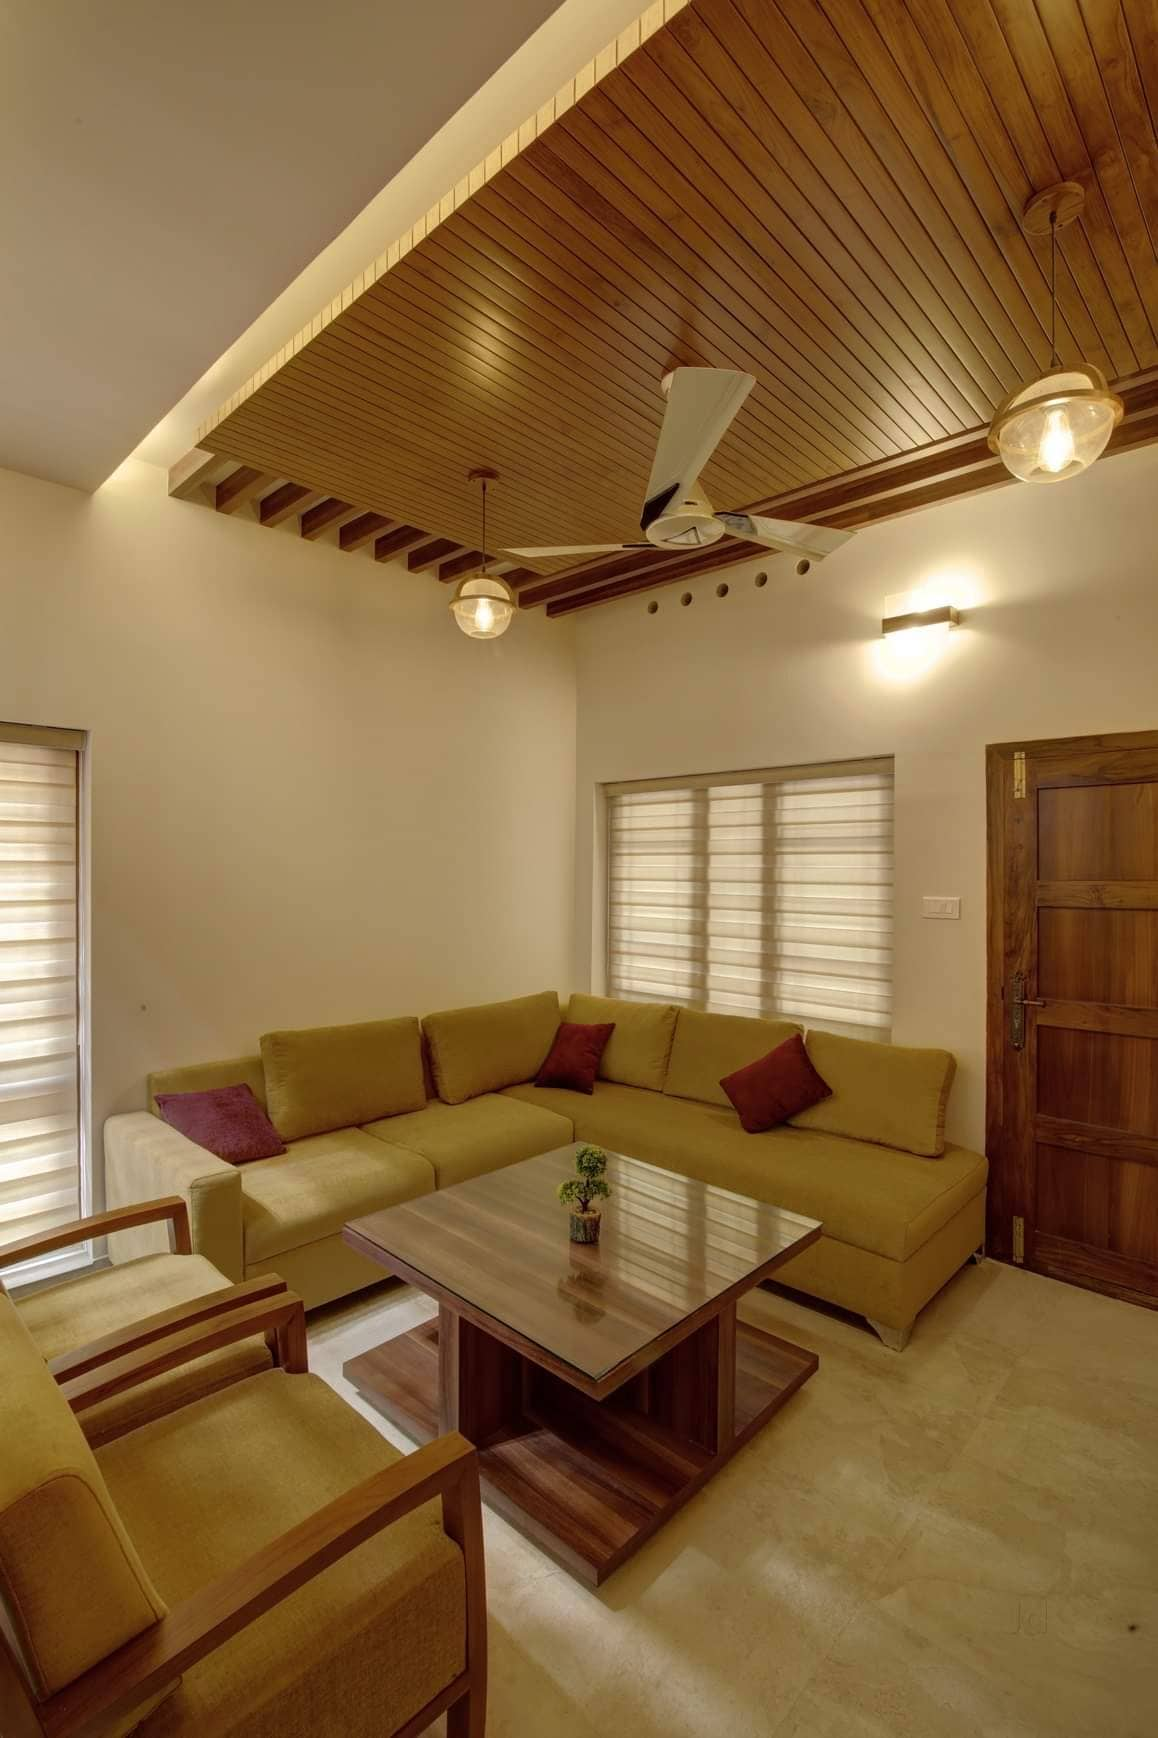 Planet Architectural Interior Designers Kurisummoodu Architects In Kottayam Justdial